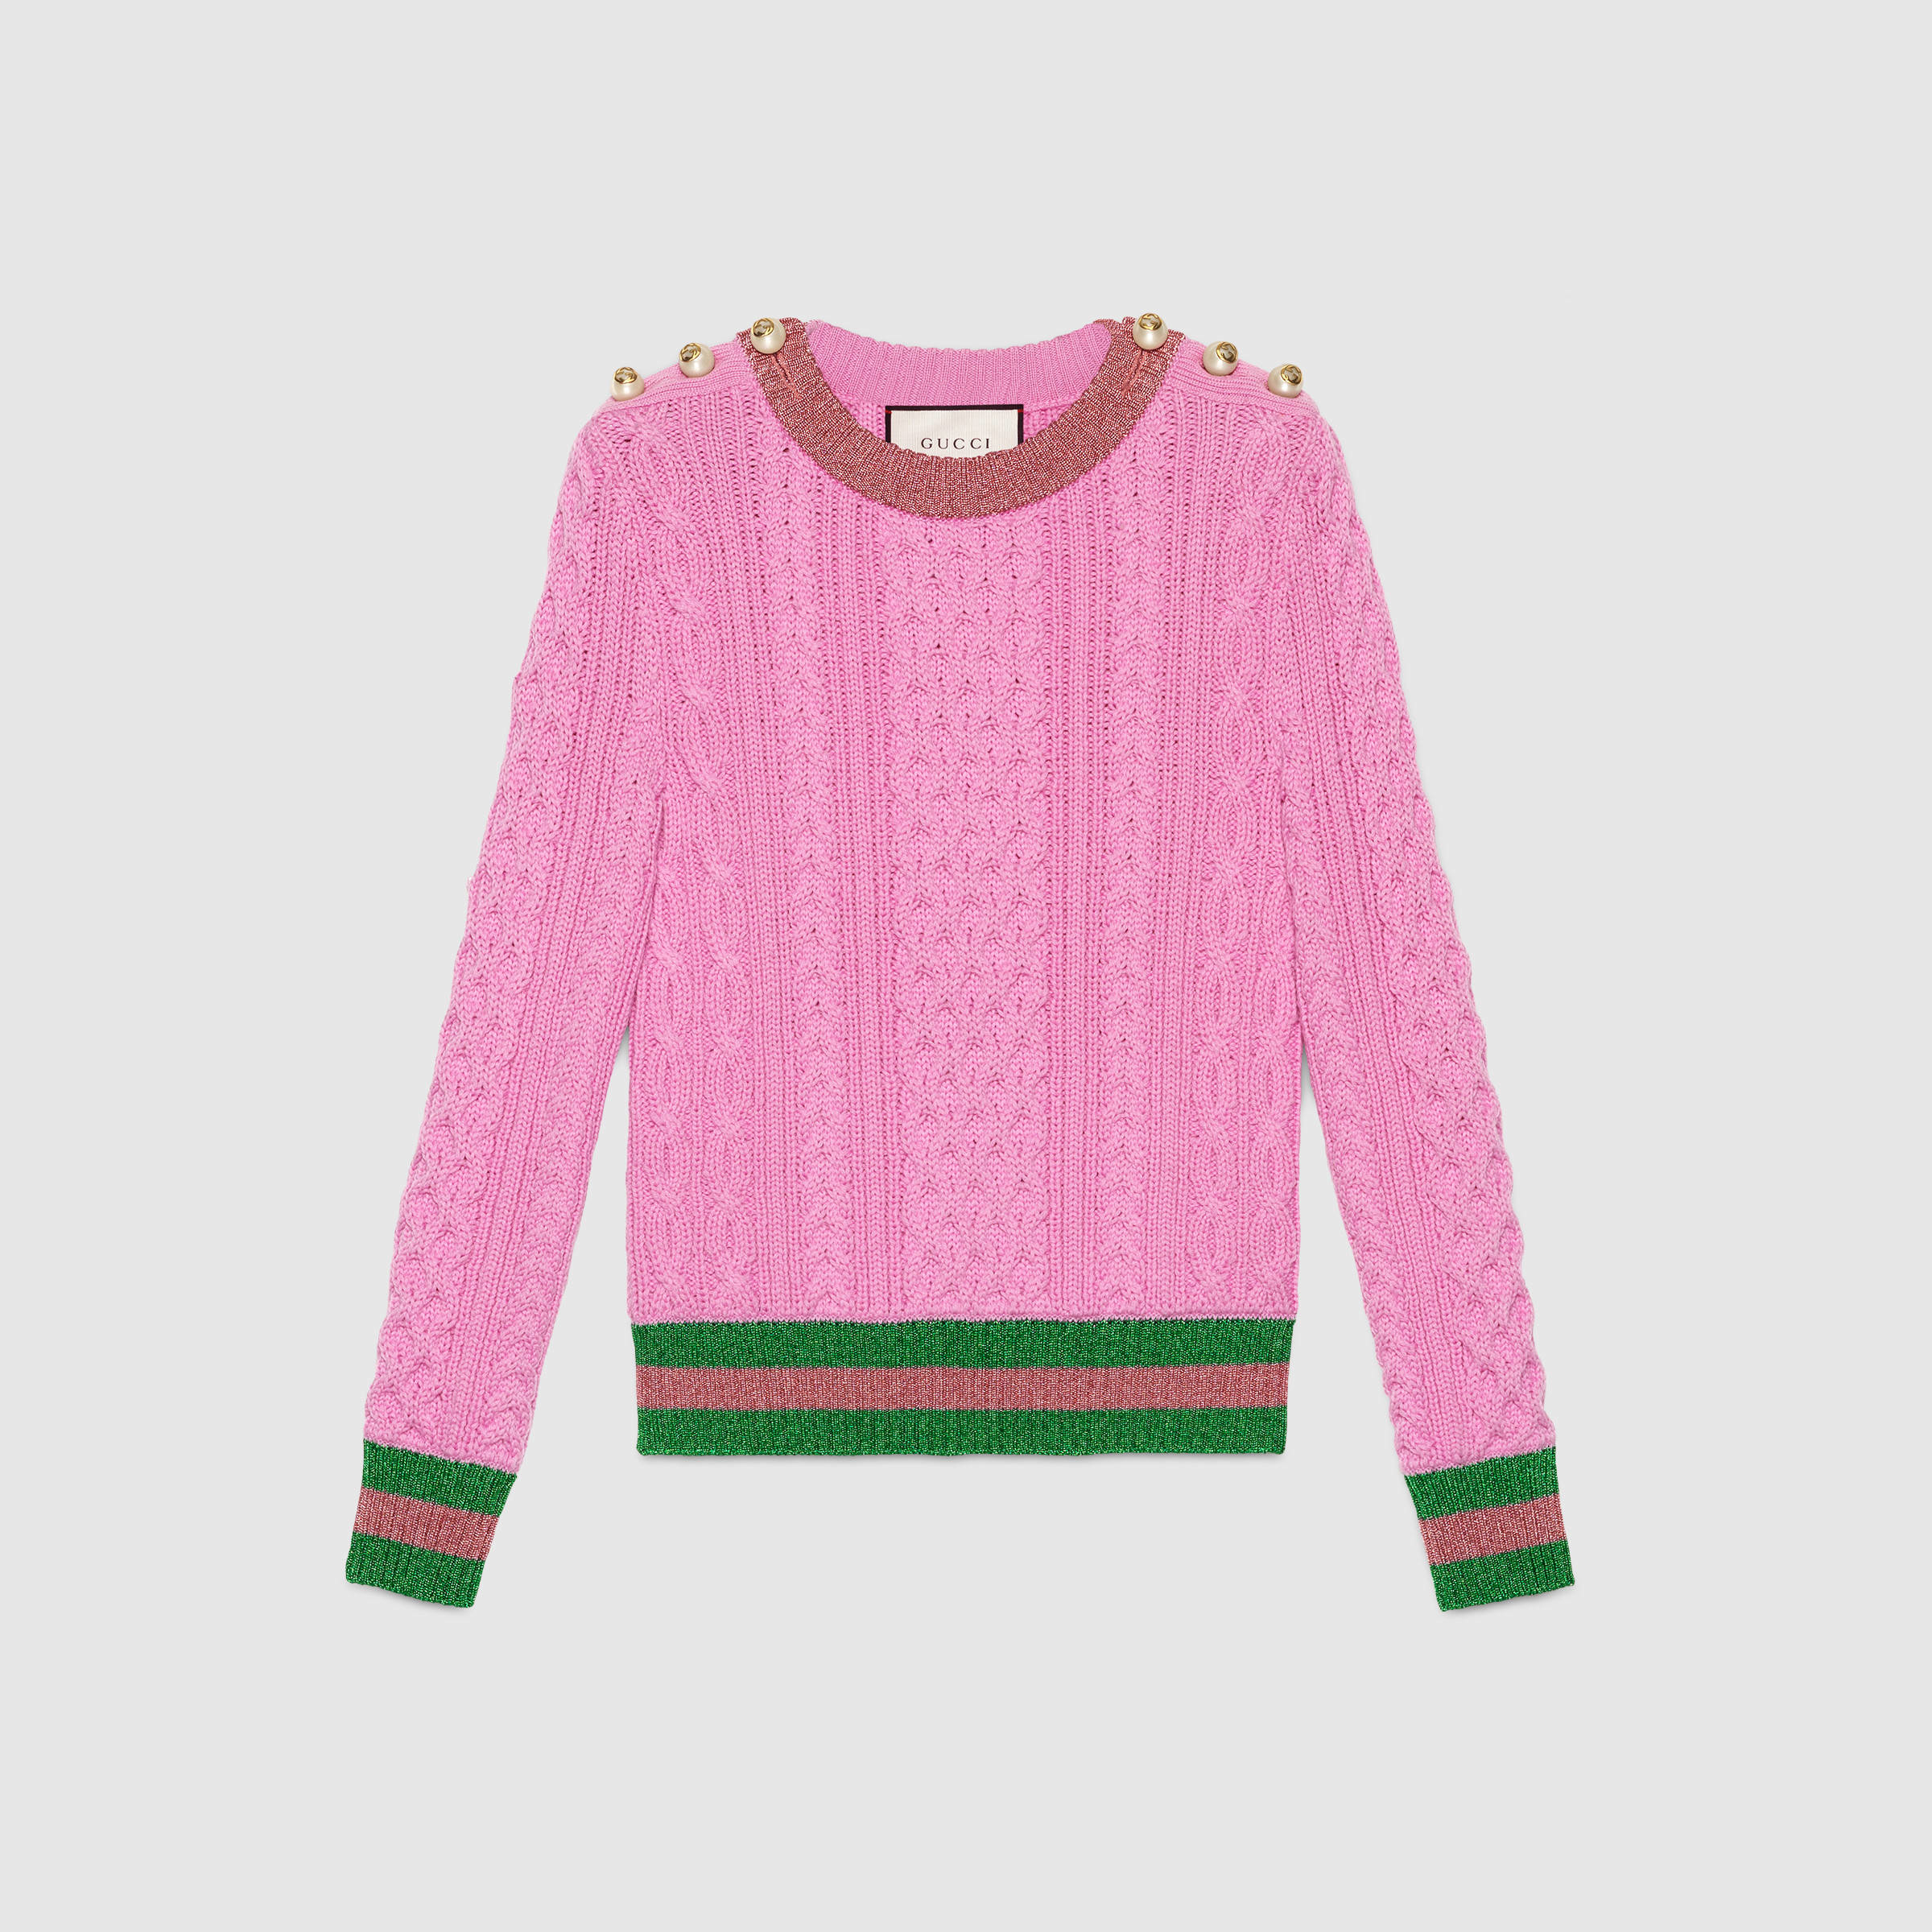 Gucci Merino Wool With Lurex Web in Pink | Lyst